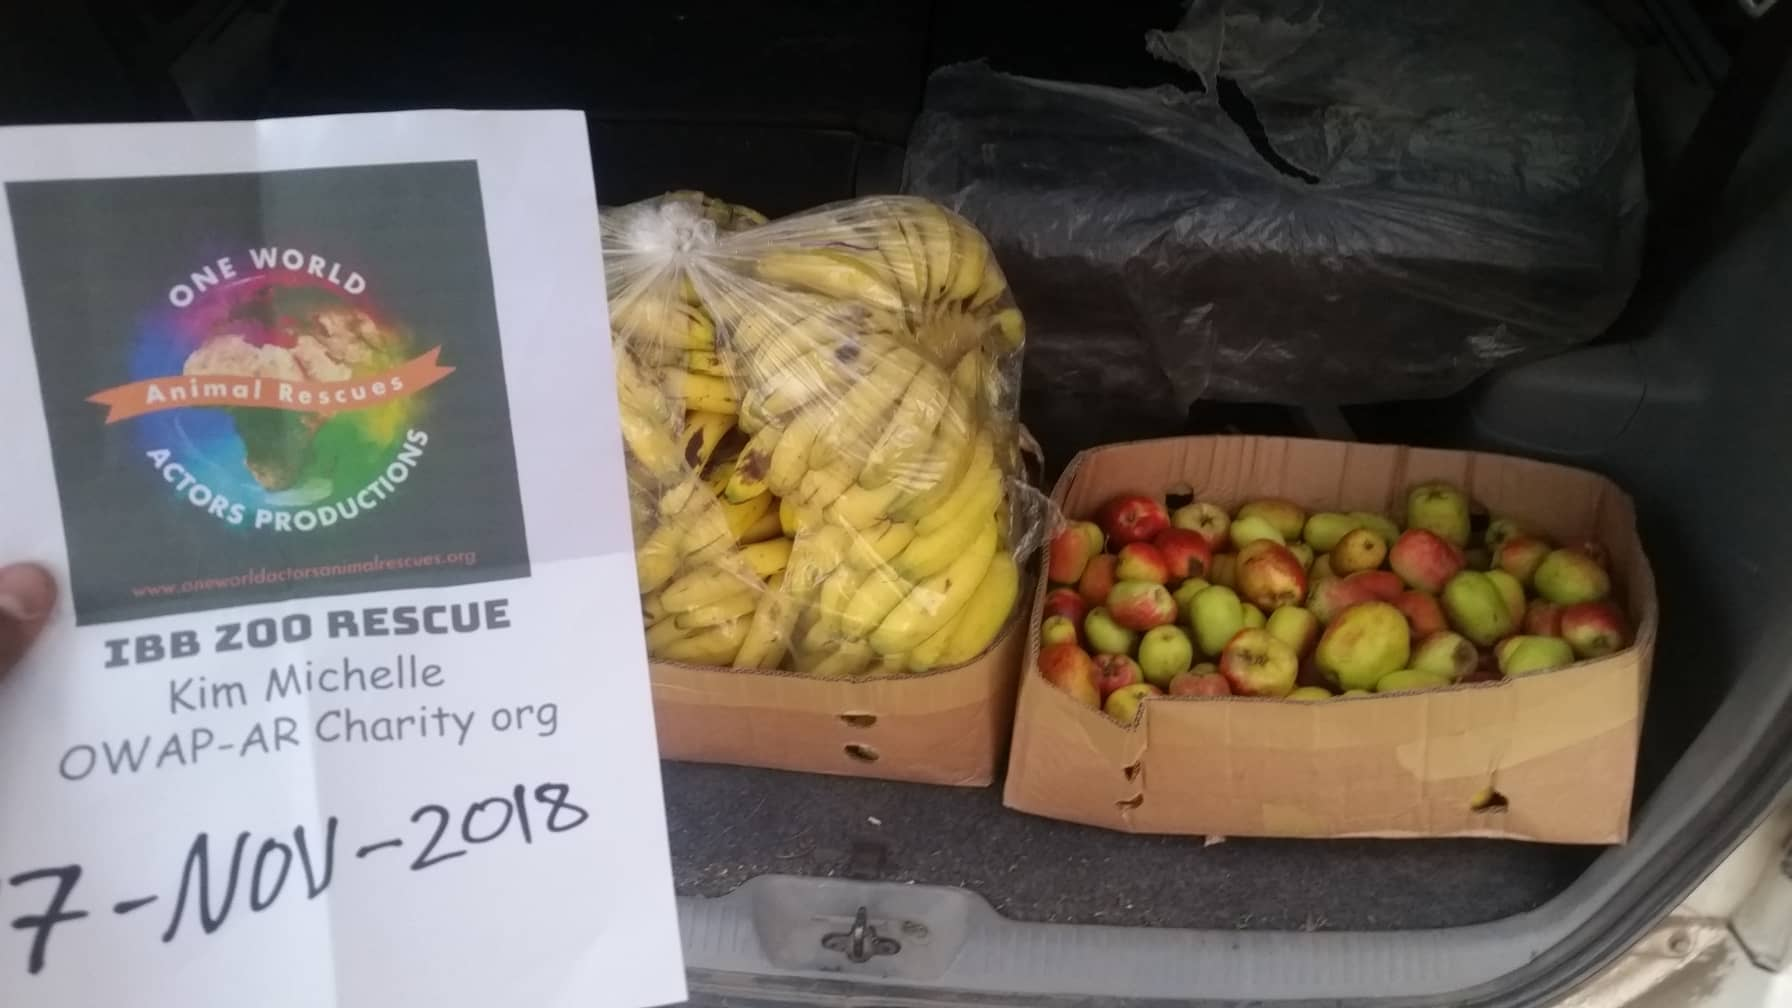 Ibb zoo rescue fruit for the baboons 17 NOV 2018 delivery and distribution today by Hisham OWAP-AR with sign.jpg